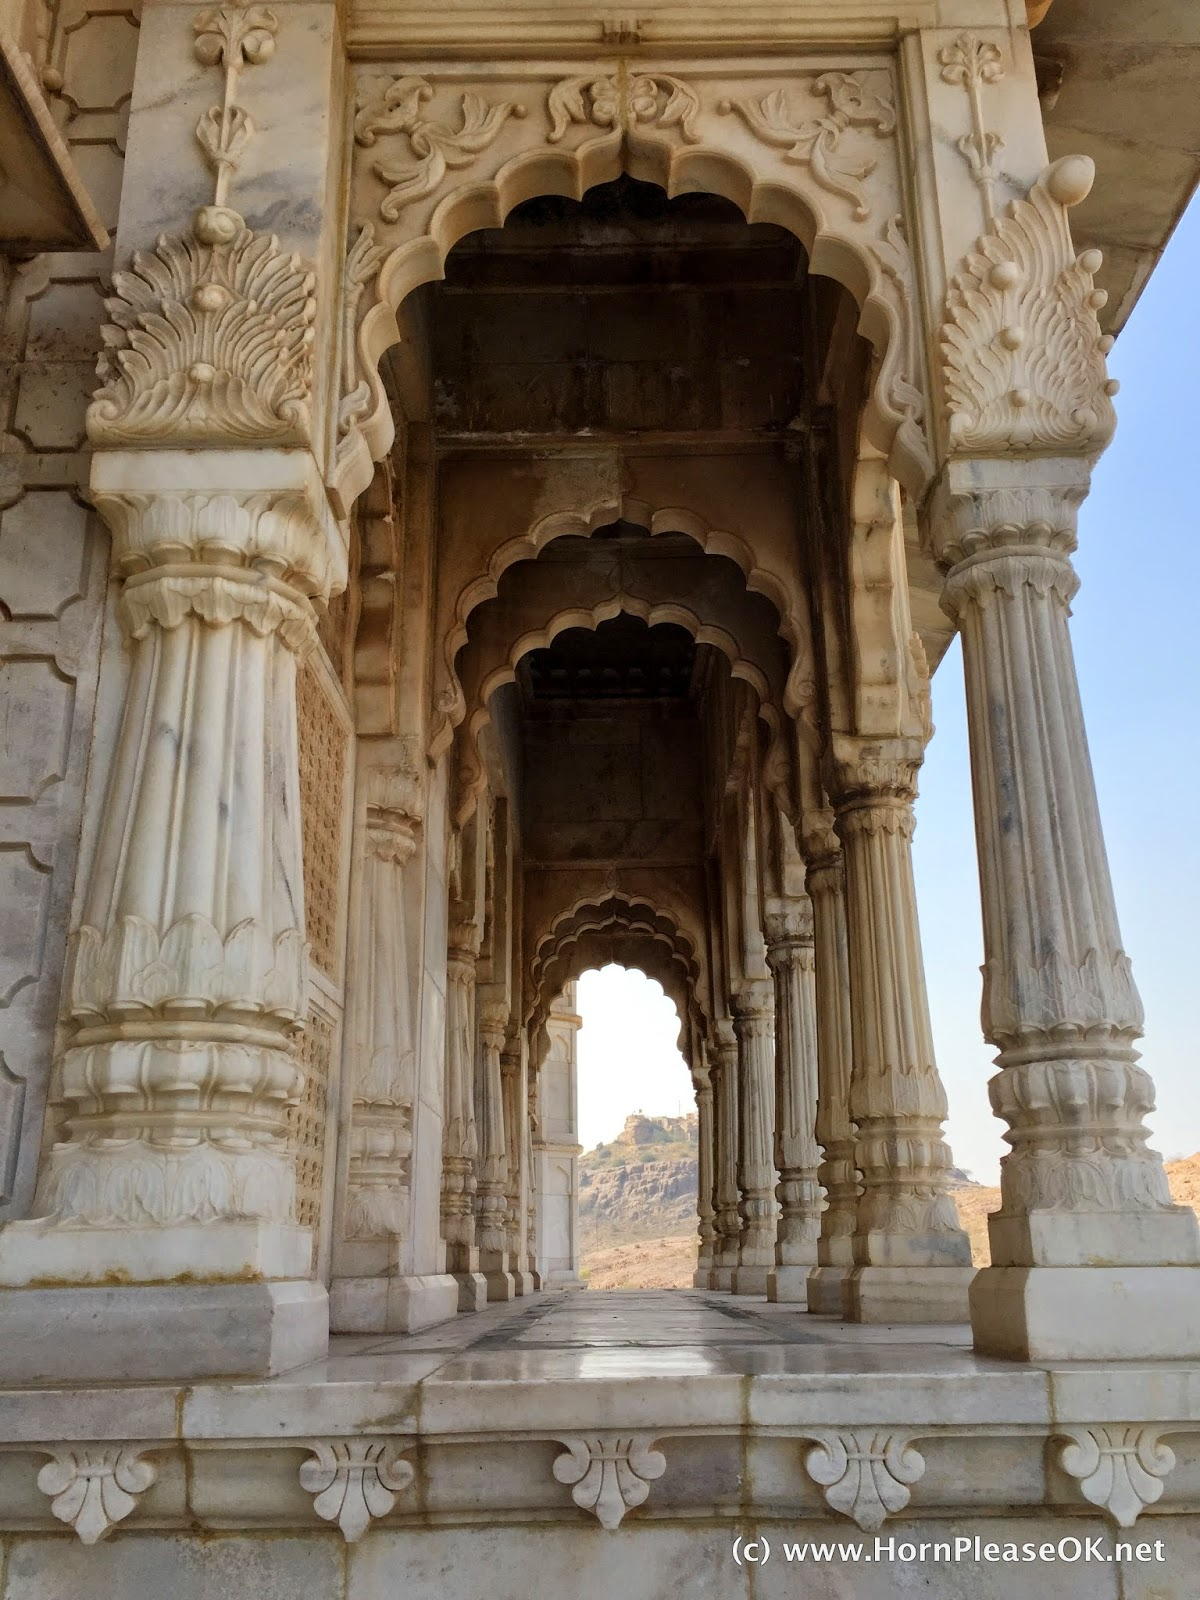 White marble carved into lotuses and the tree of life at Jaswant Thada